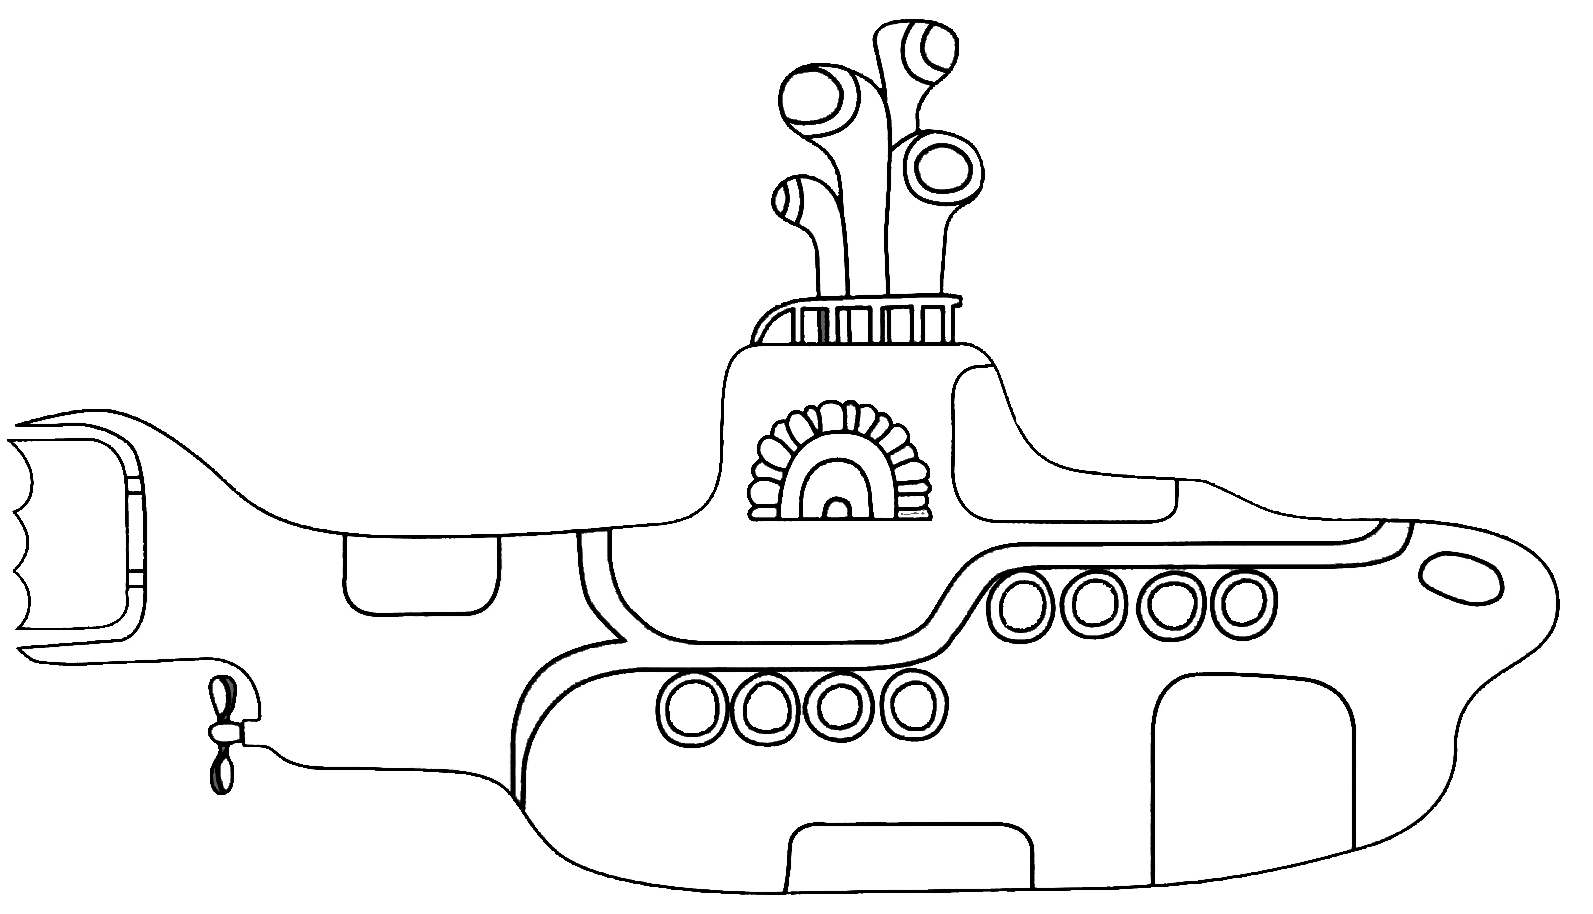 yellow submarine coloring pages - nen cult submarino amarelo para colorir